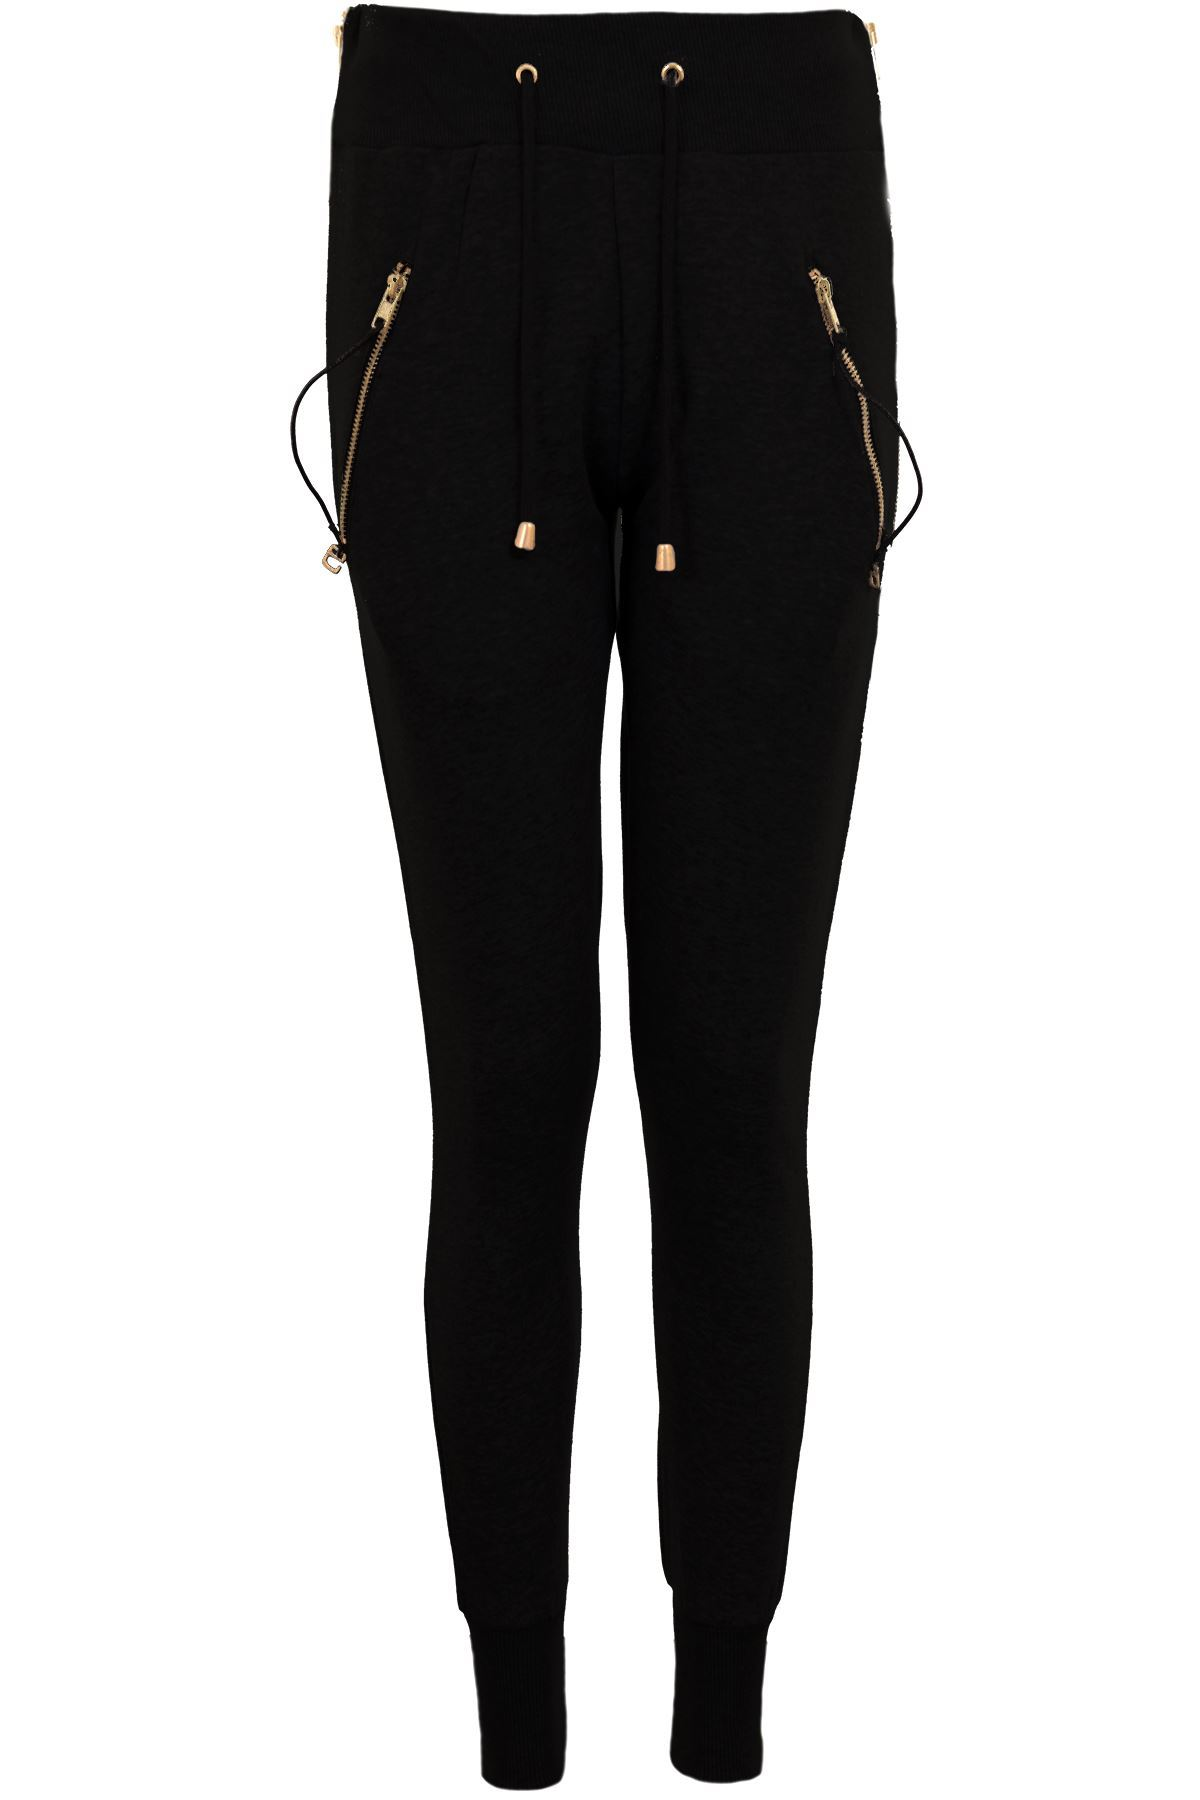 new lifestyle new york official shop Details about Ladies Luxury Gold Zip Pockets Elasticated Tracksuit Bottoms  Trousers Joggers